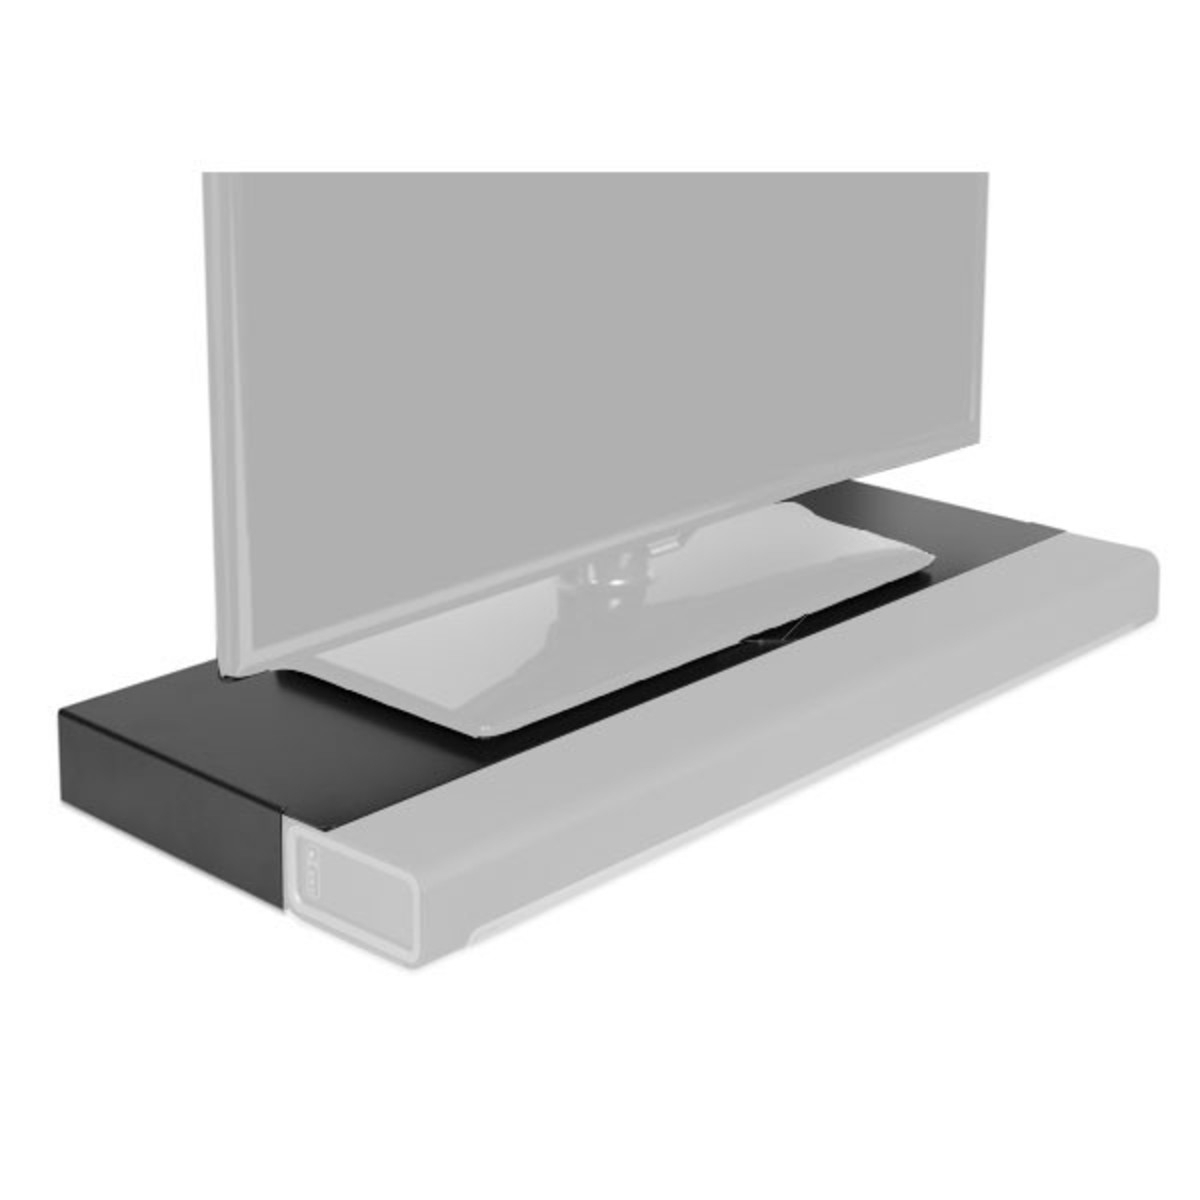 Flexson Tv Stand For Sonos Playbar, Black At Gear4Music Pertaining To Favorite Sonos Tv Stands (Gallery 2 of 20)